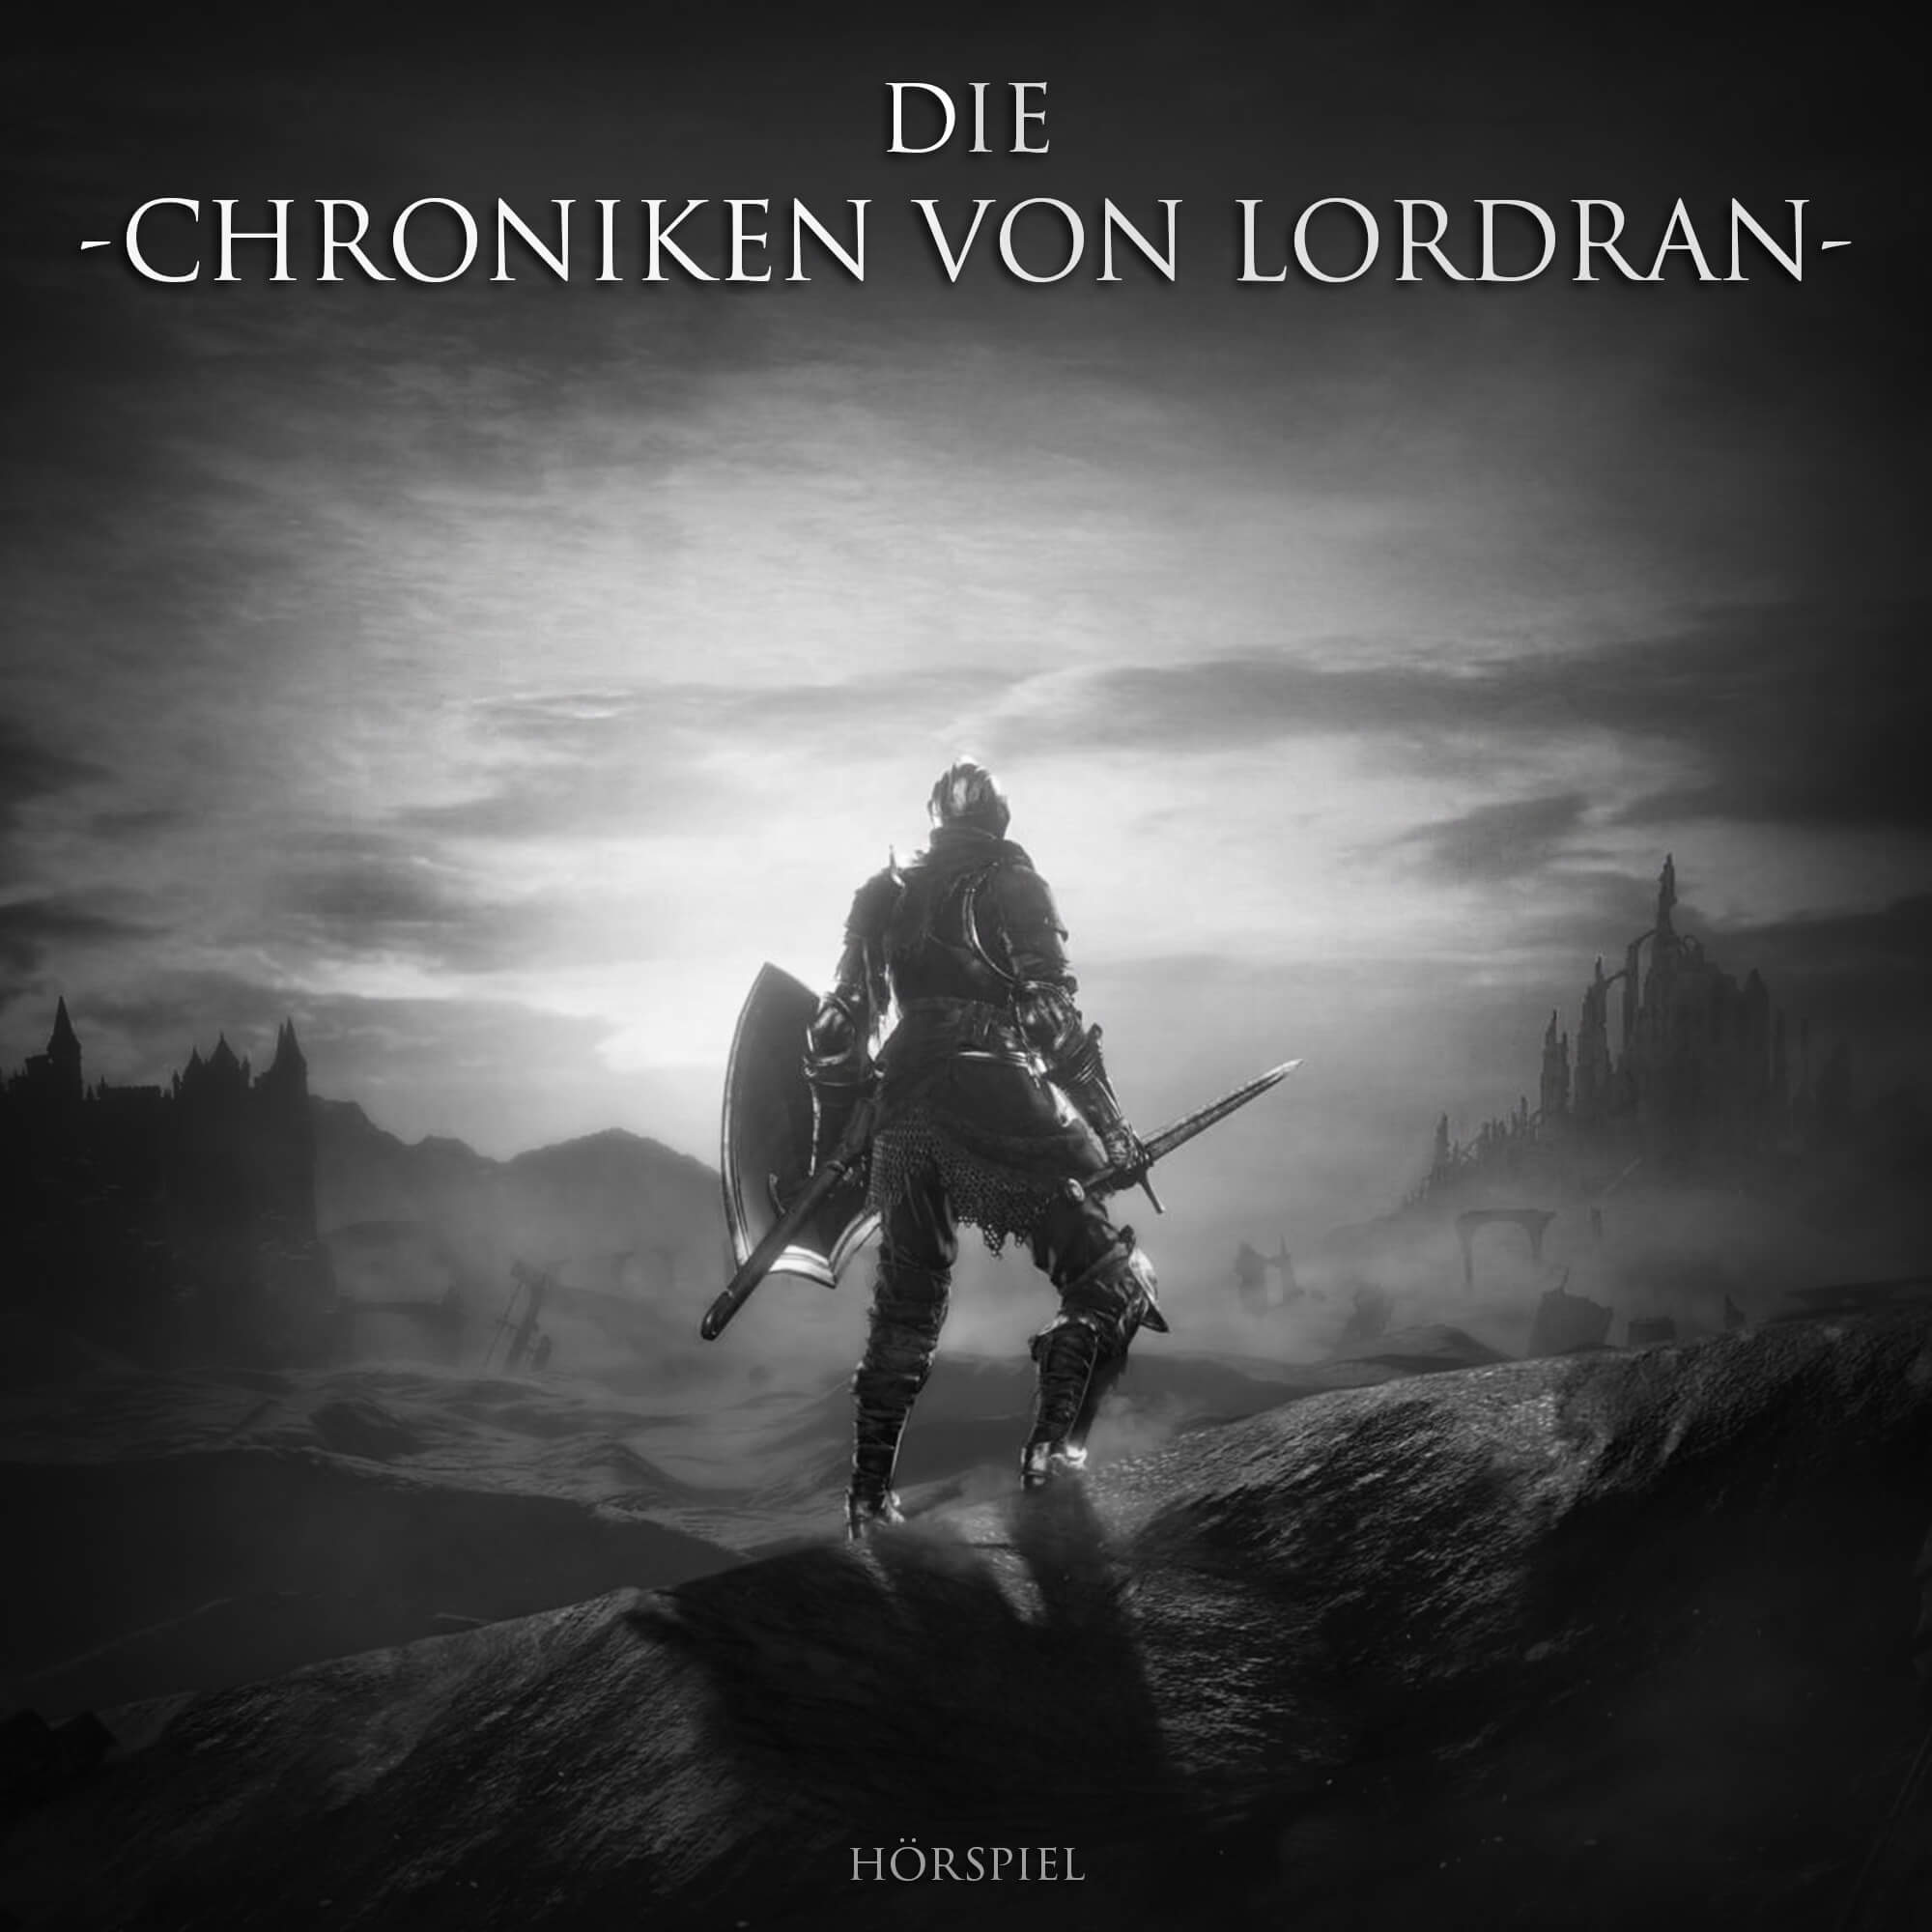 chronicen von lordan cover 3 Compressed 2